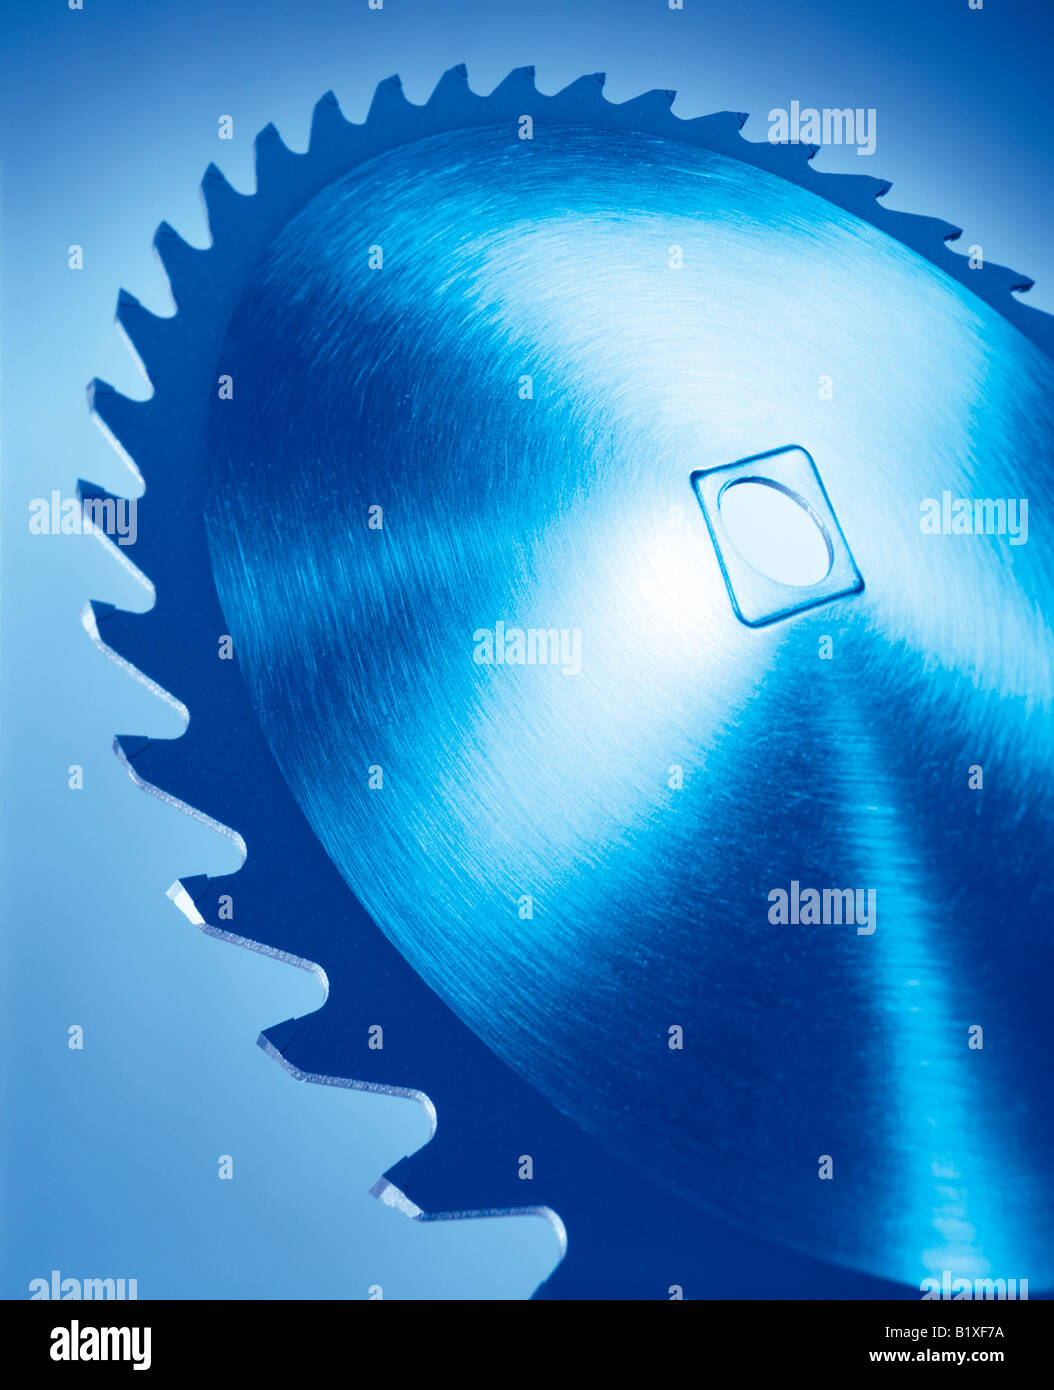 A large close up of a blue metal saw blade with large teeth - Stock Image